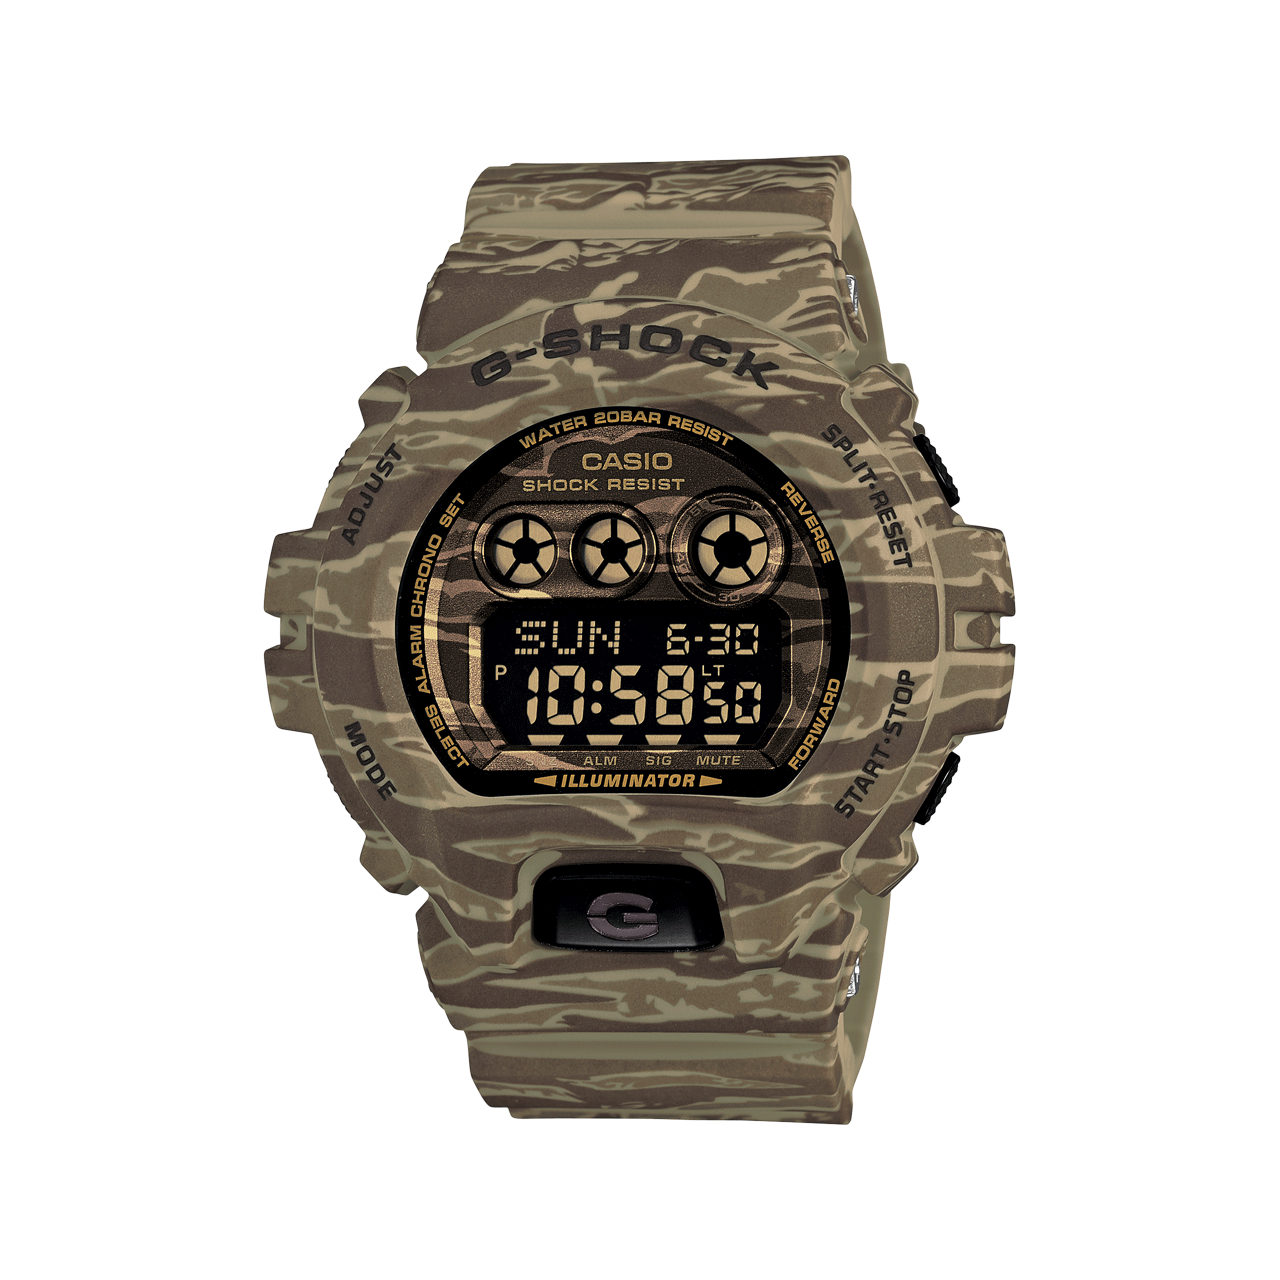 Get your #camo on! #Gshock #Gschockwatch #timepieces